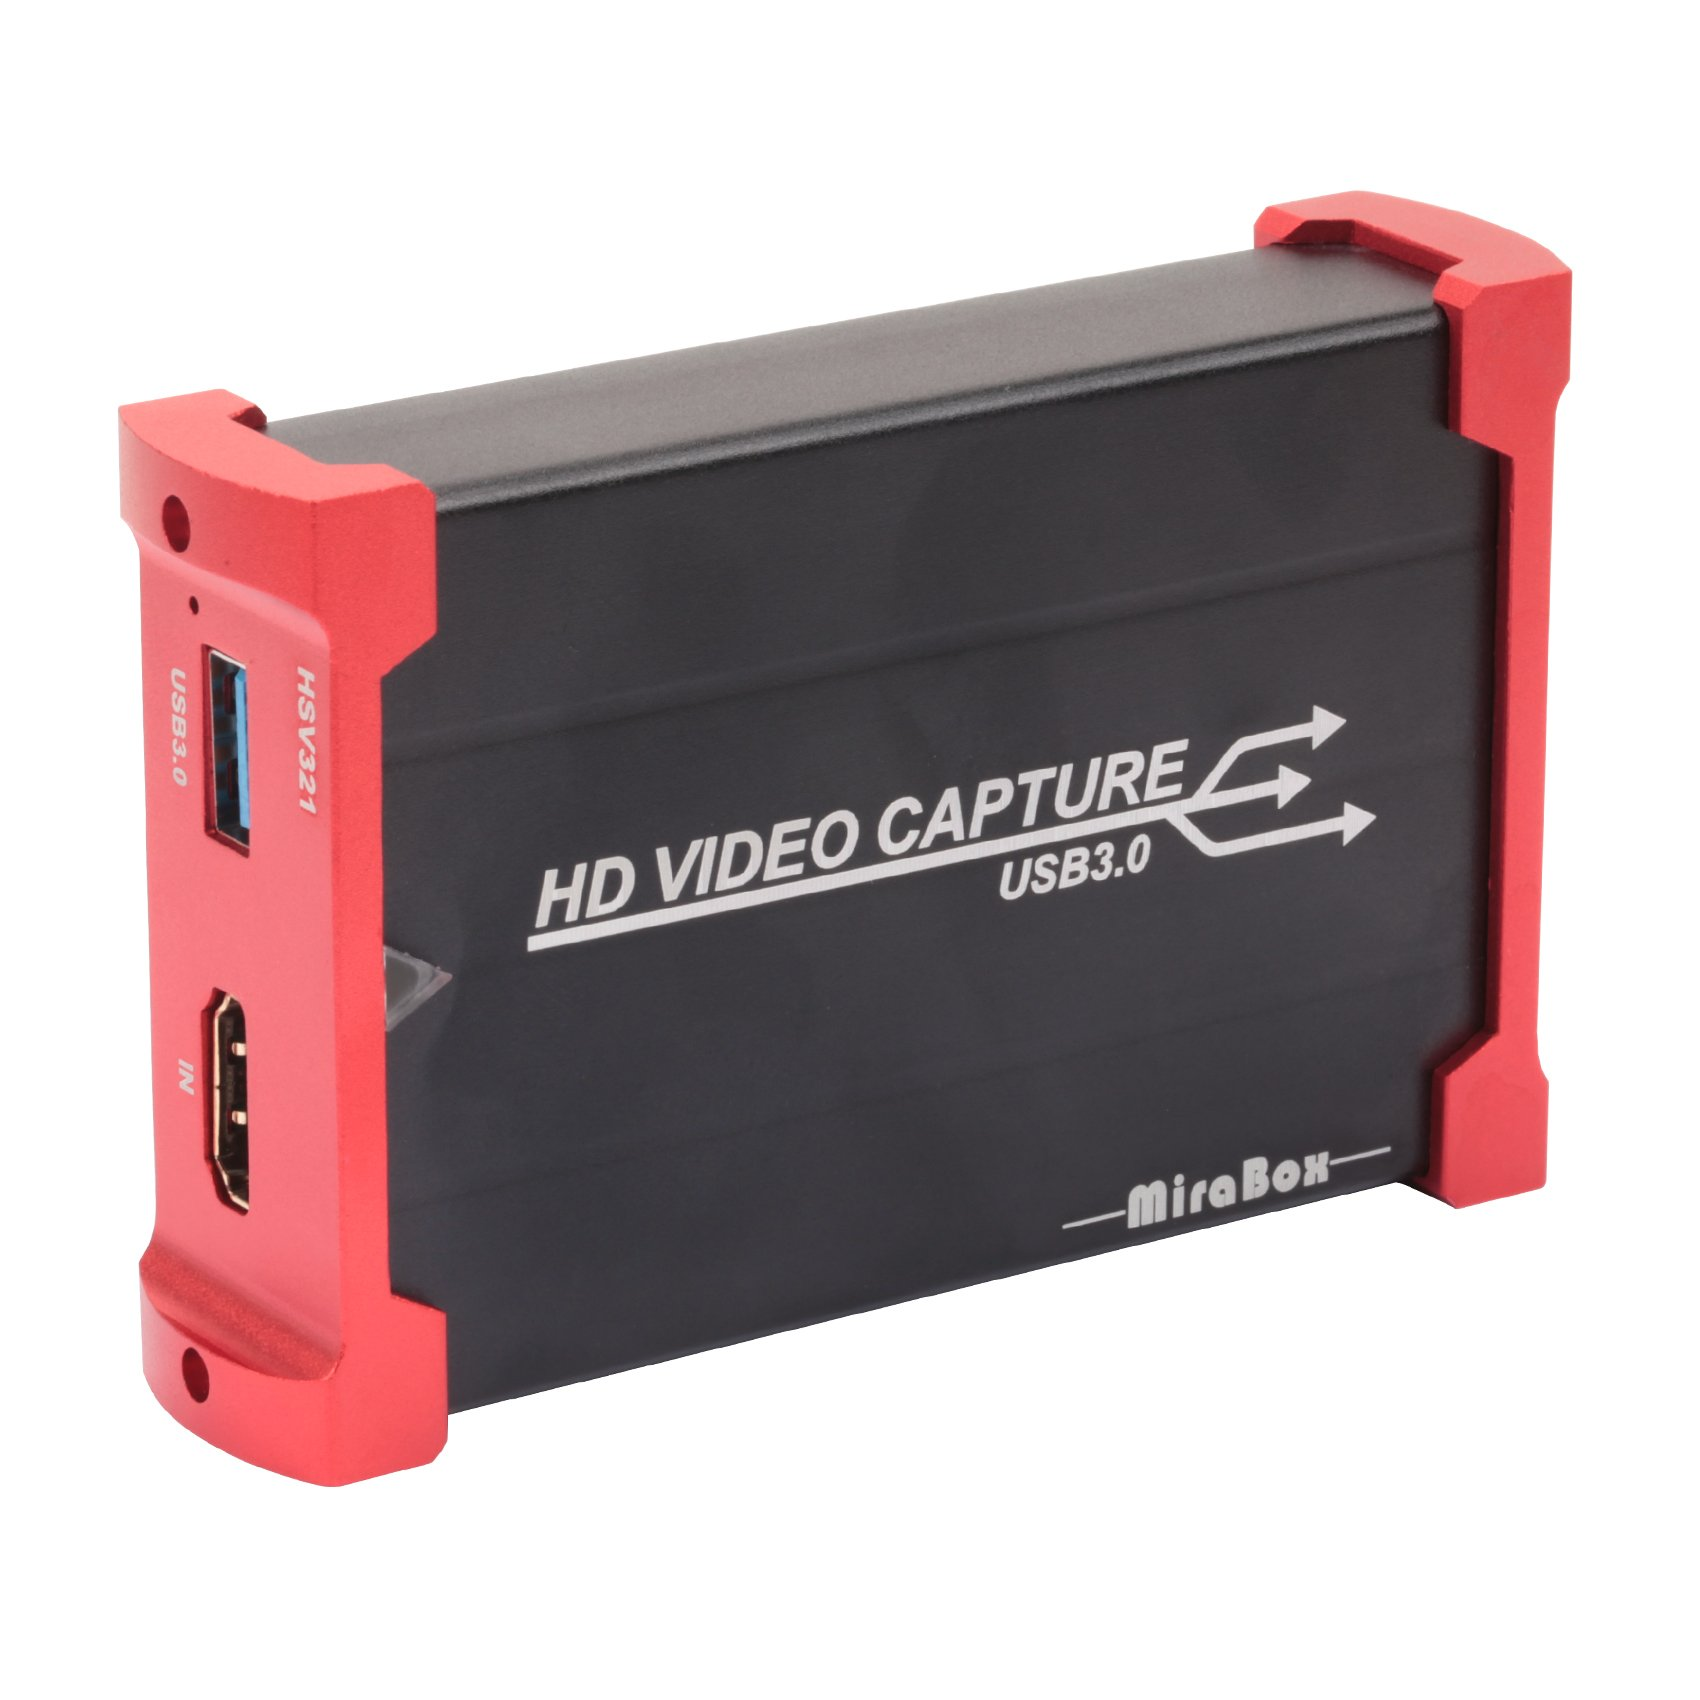 MiraBox Capture Card,USB 3.0 HDMI Game Capture Card Device With HDMI Loop-out Support HD Video HDCP 1080P Windows 7 8 10 Linux Youtube OBS Twitch for PS3 PS4 Xbox Wii U Streaming and Recording, HSV321 by Mirabox